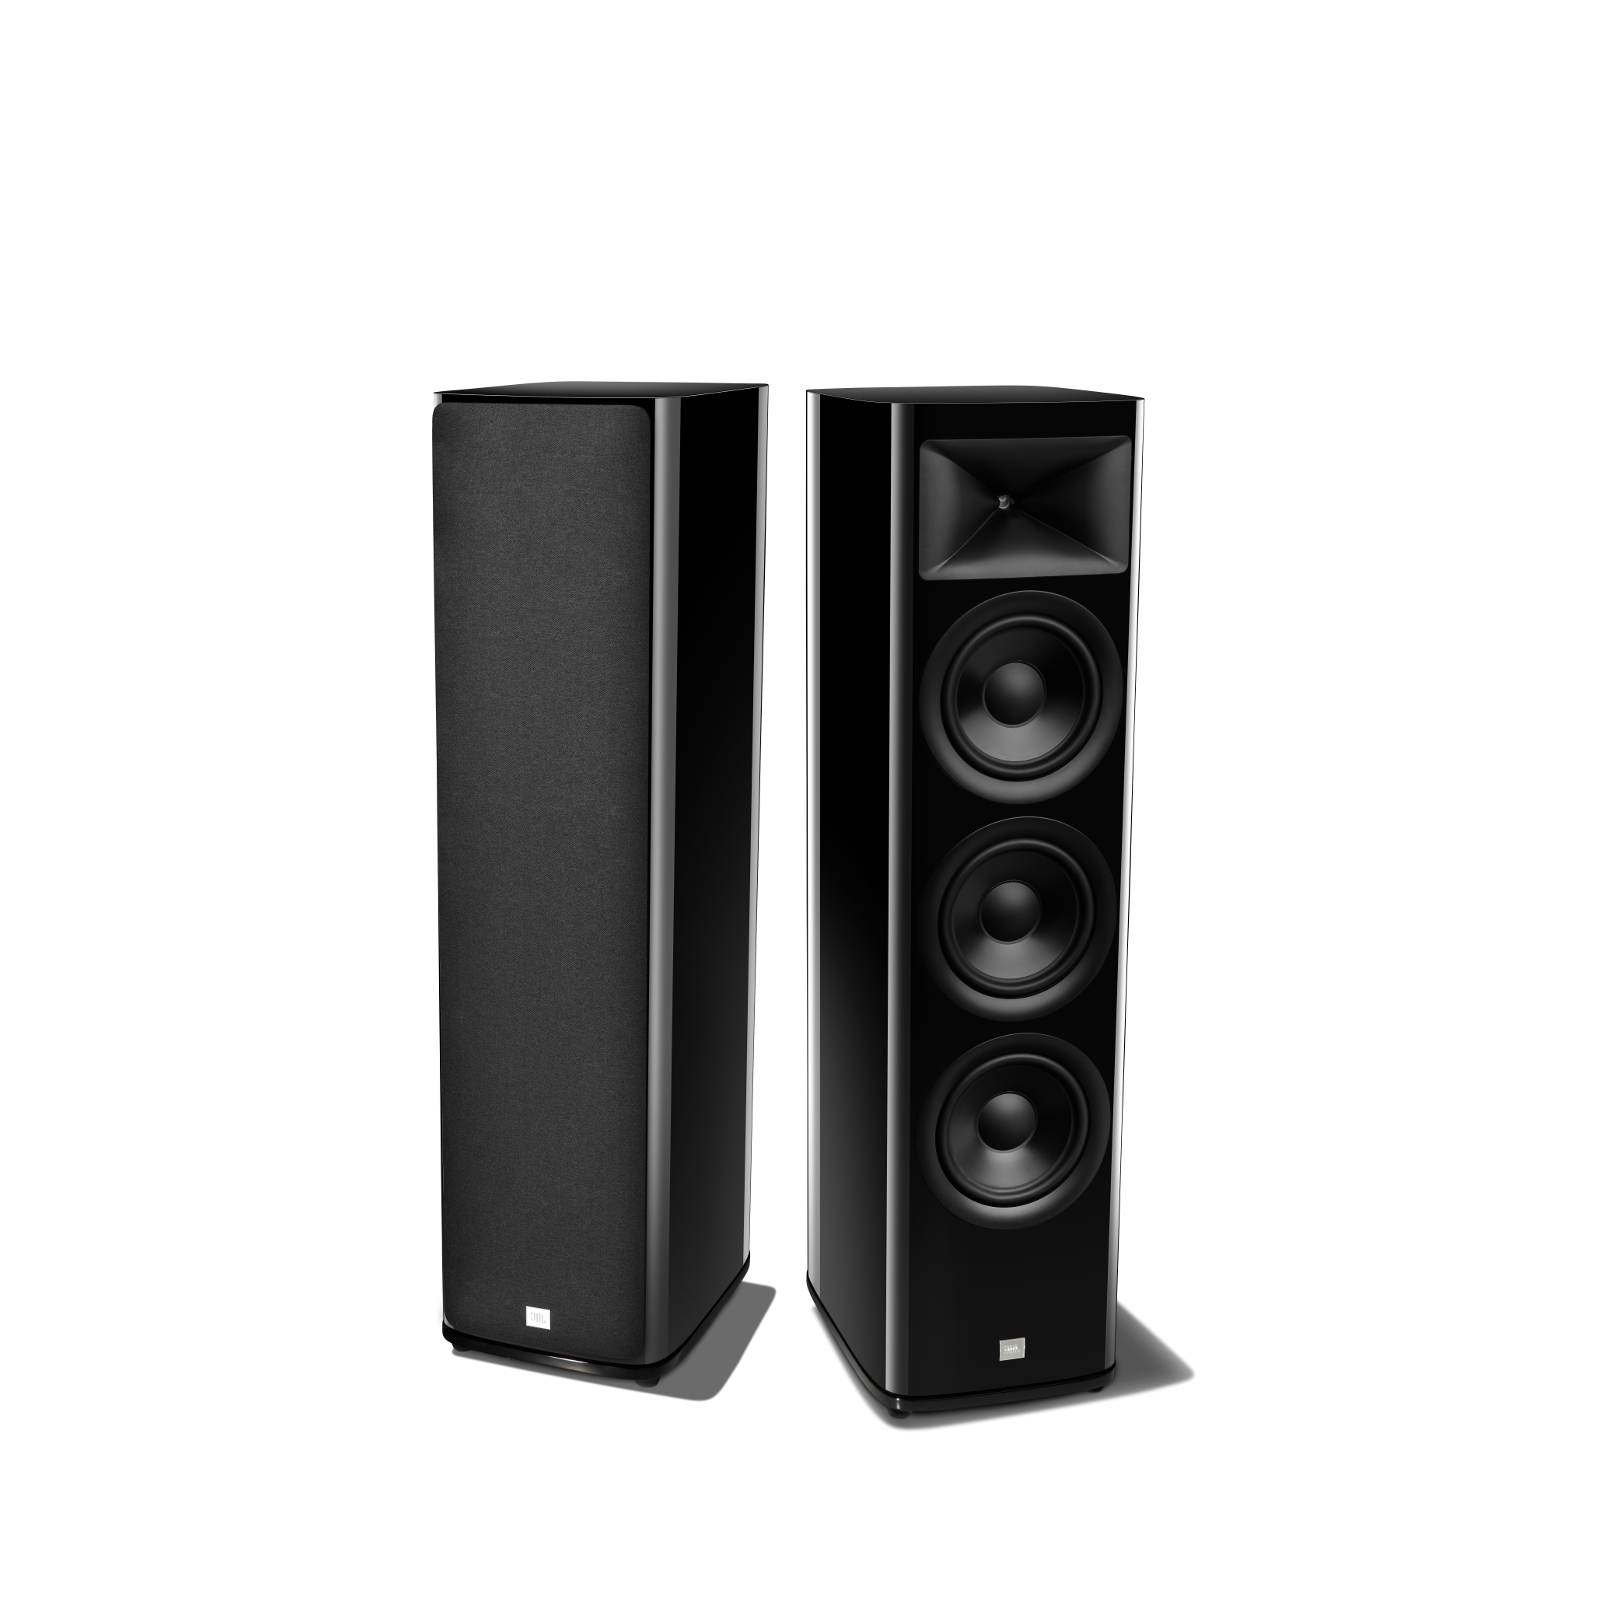 HDI-3800 - Black Gloss - 2 ½-way Triple 8-inch (200mm) Floorstanding Loudspeaker - Detailshot 1